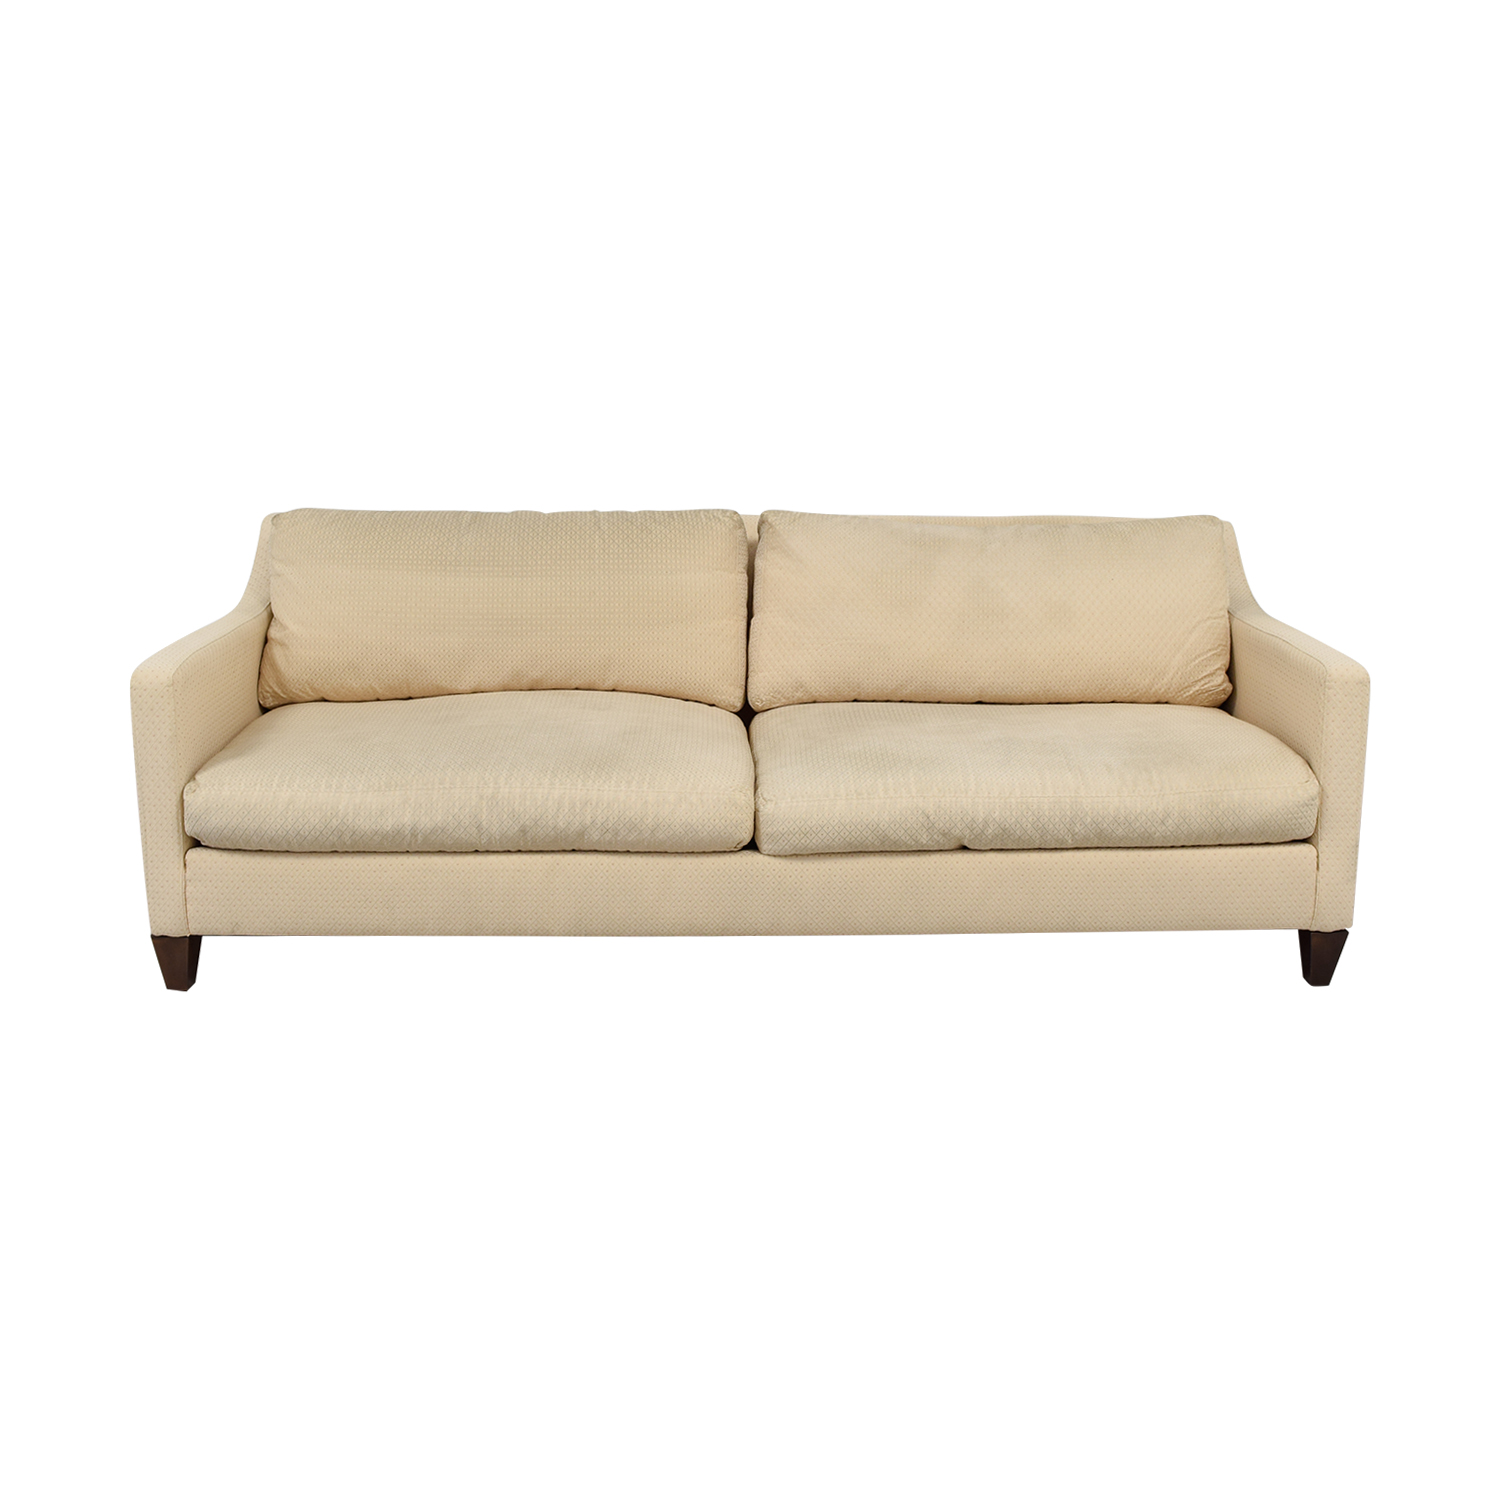 Ethan Allen Ethan Allen Beige Two-Cushion Couch for sale